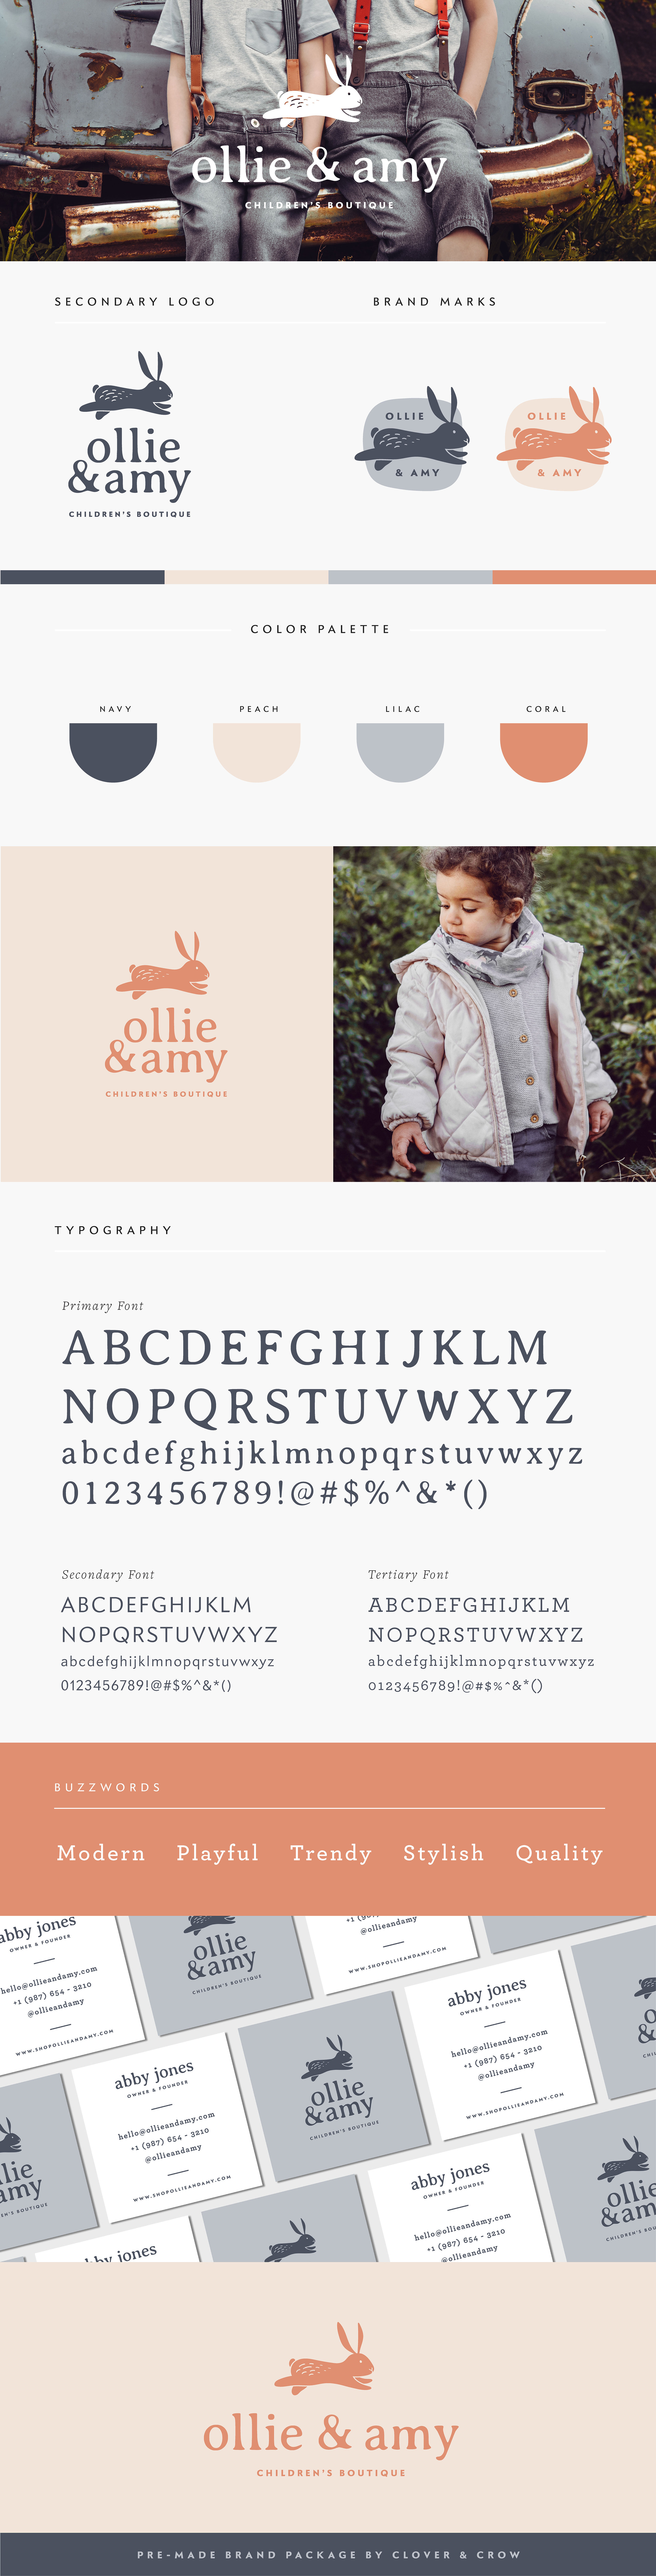 CLOVER-AND-CROW-BRANDING-LOGO-DESIGN-OLLIE-AND-AMY-PRE-MADE-BRAND-PACKAGE-TEMPLATE.jpg